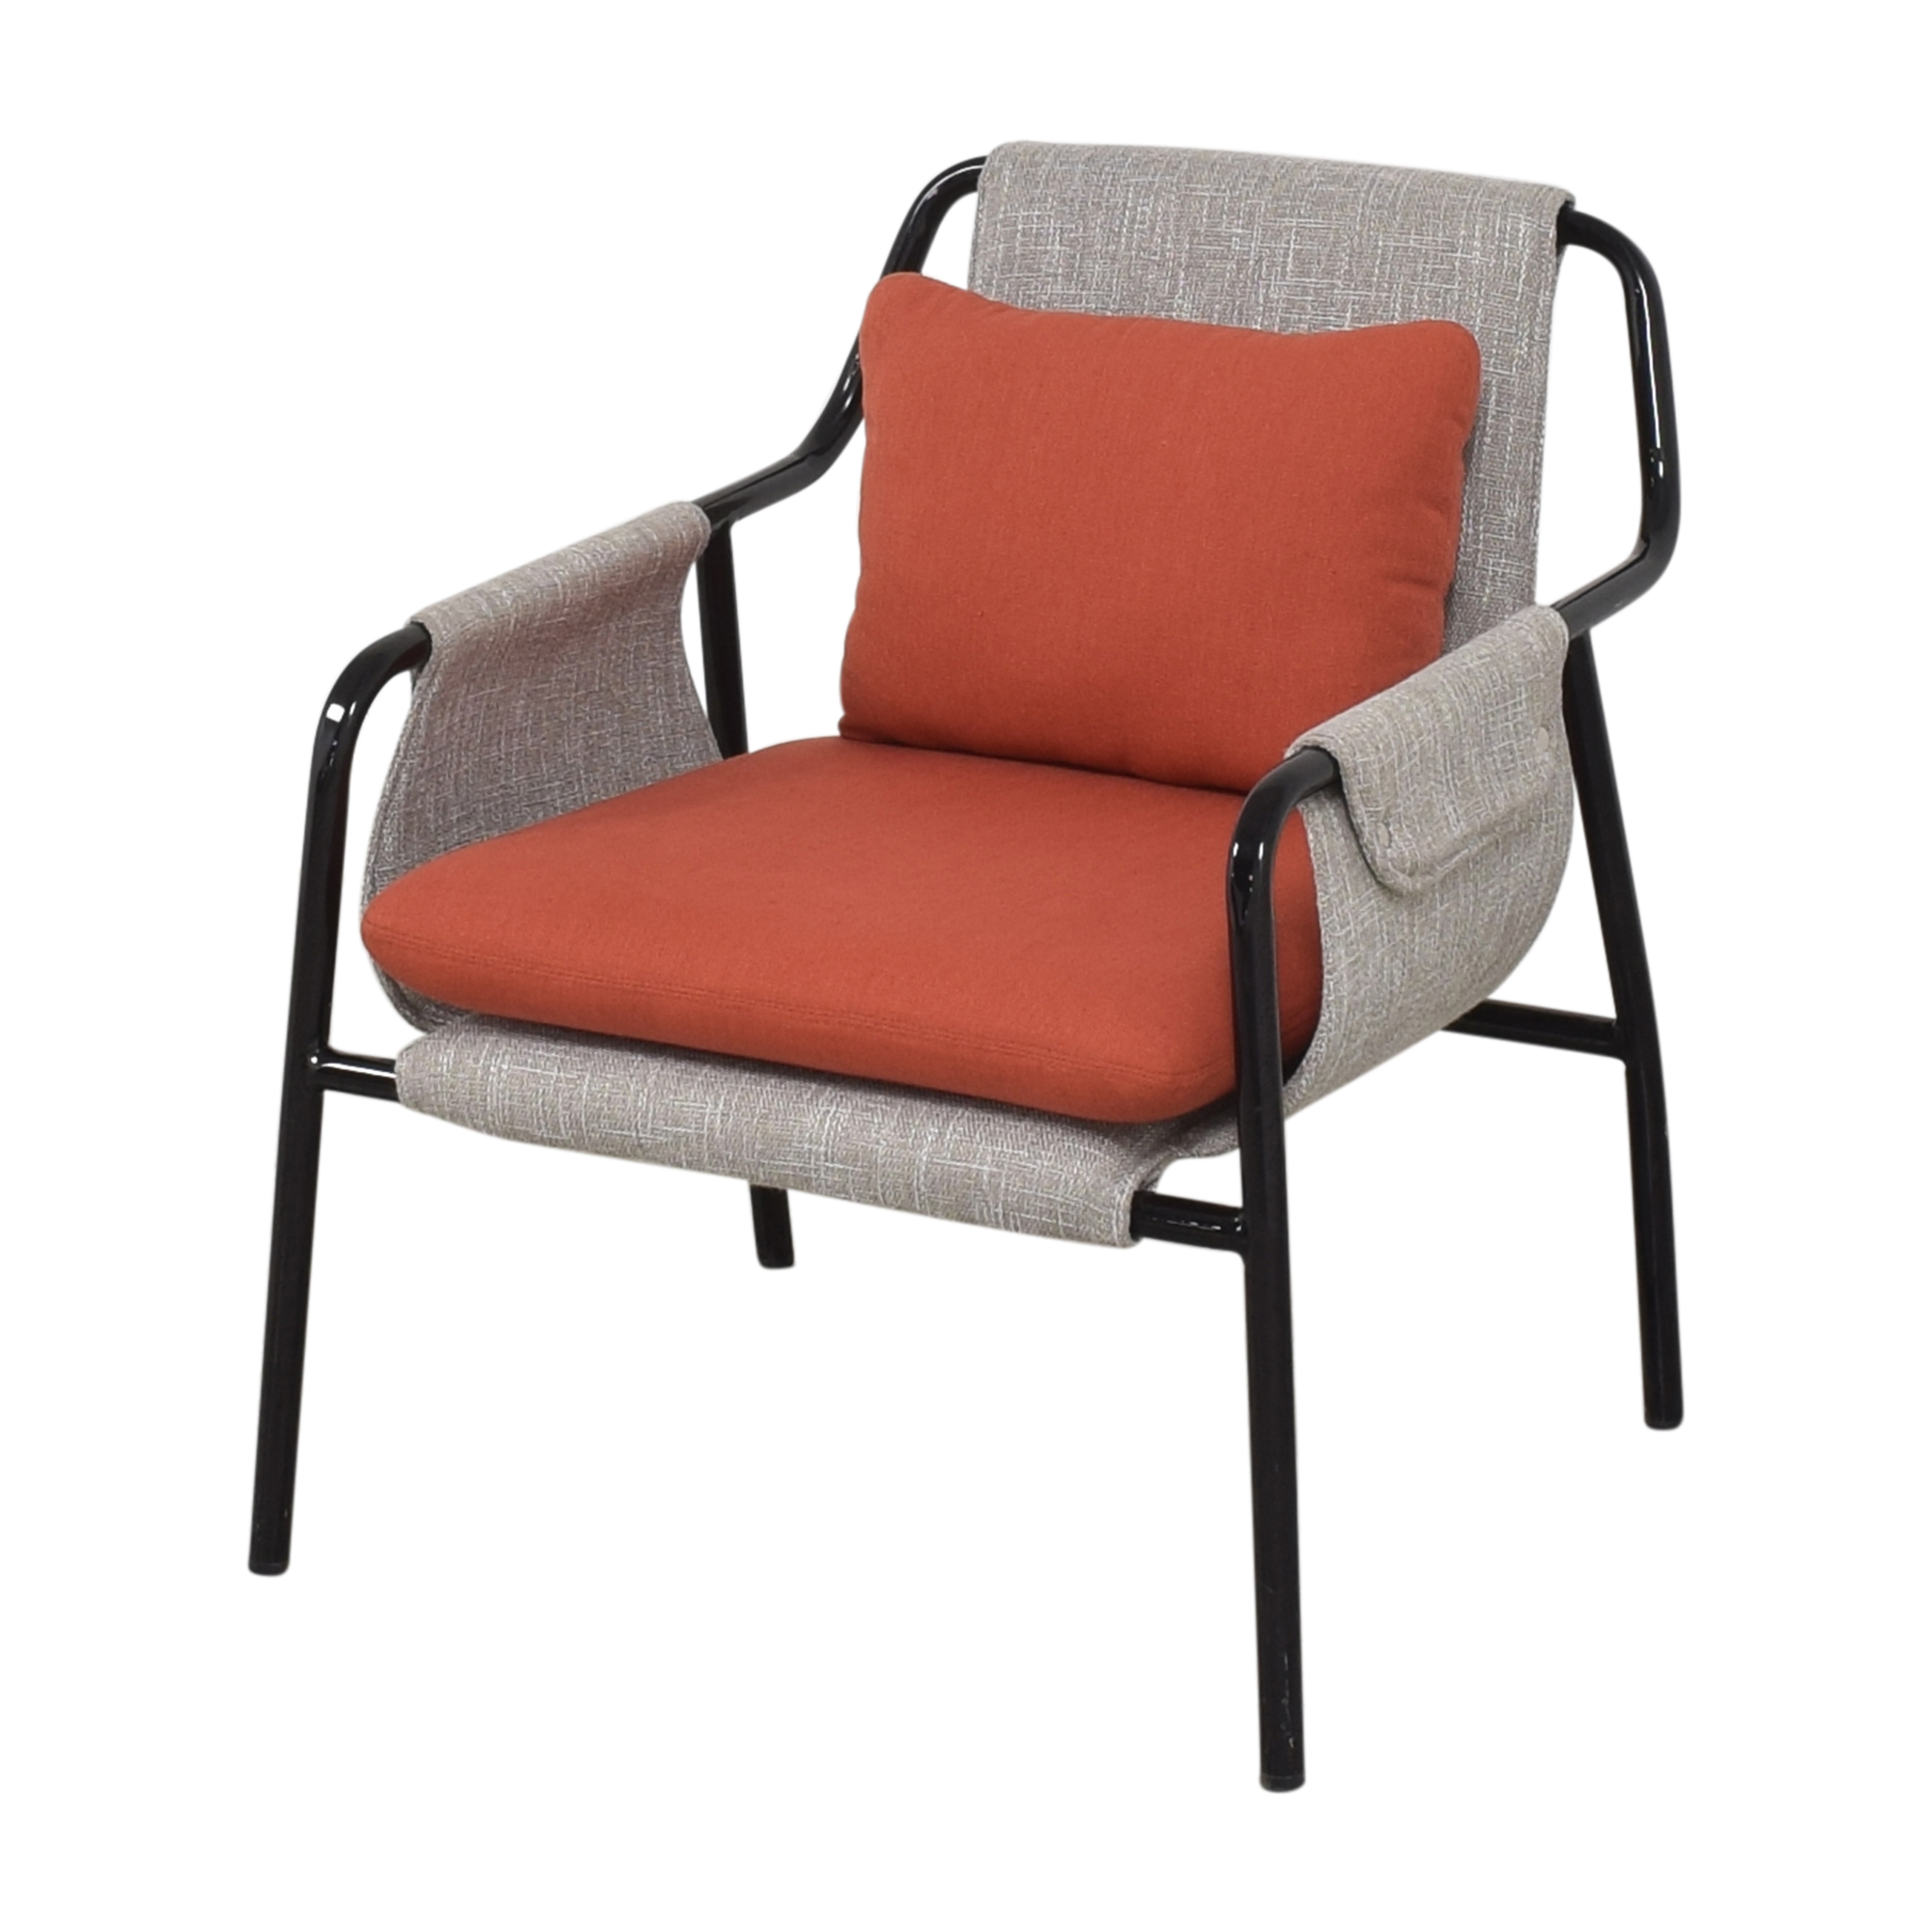 Industry West Industry West Fletcher Chair used